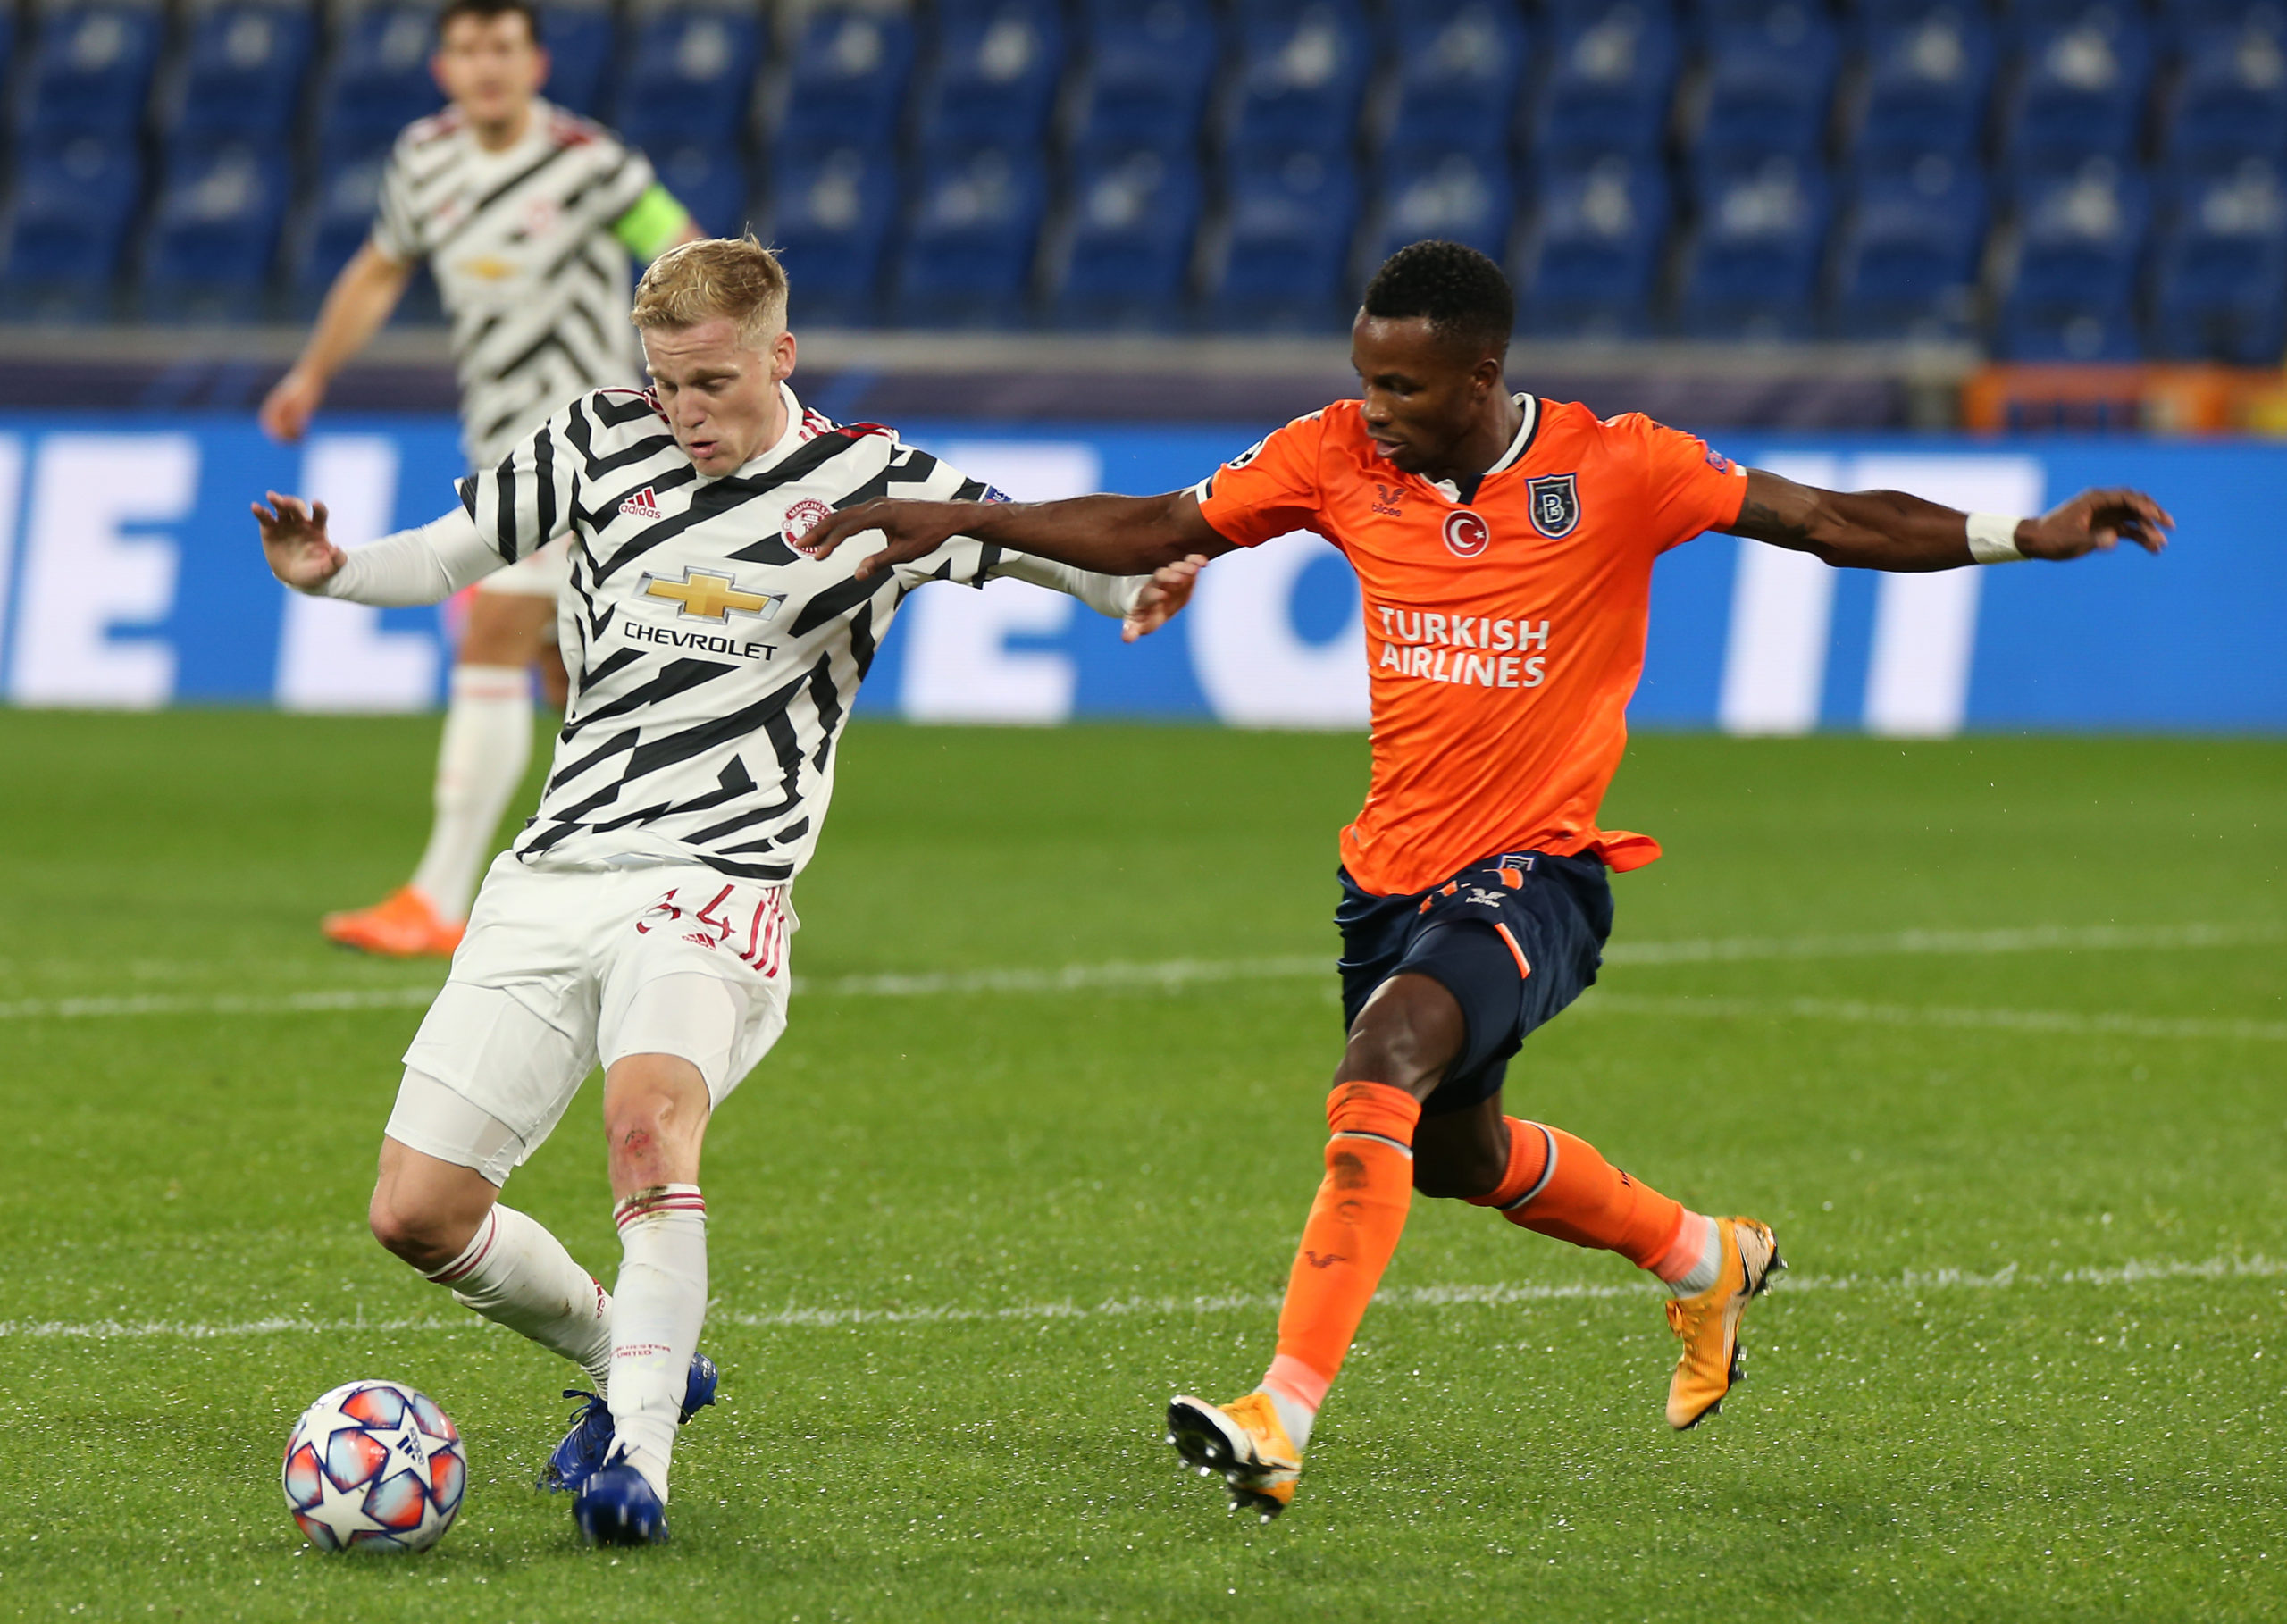 Celtic player Boli Bolingoli in action on loan at Istanbul Basaksehir